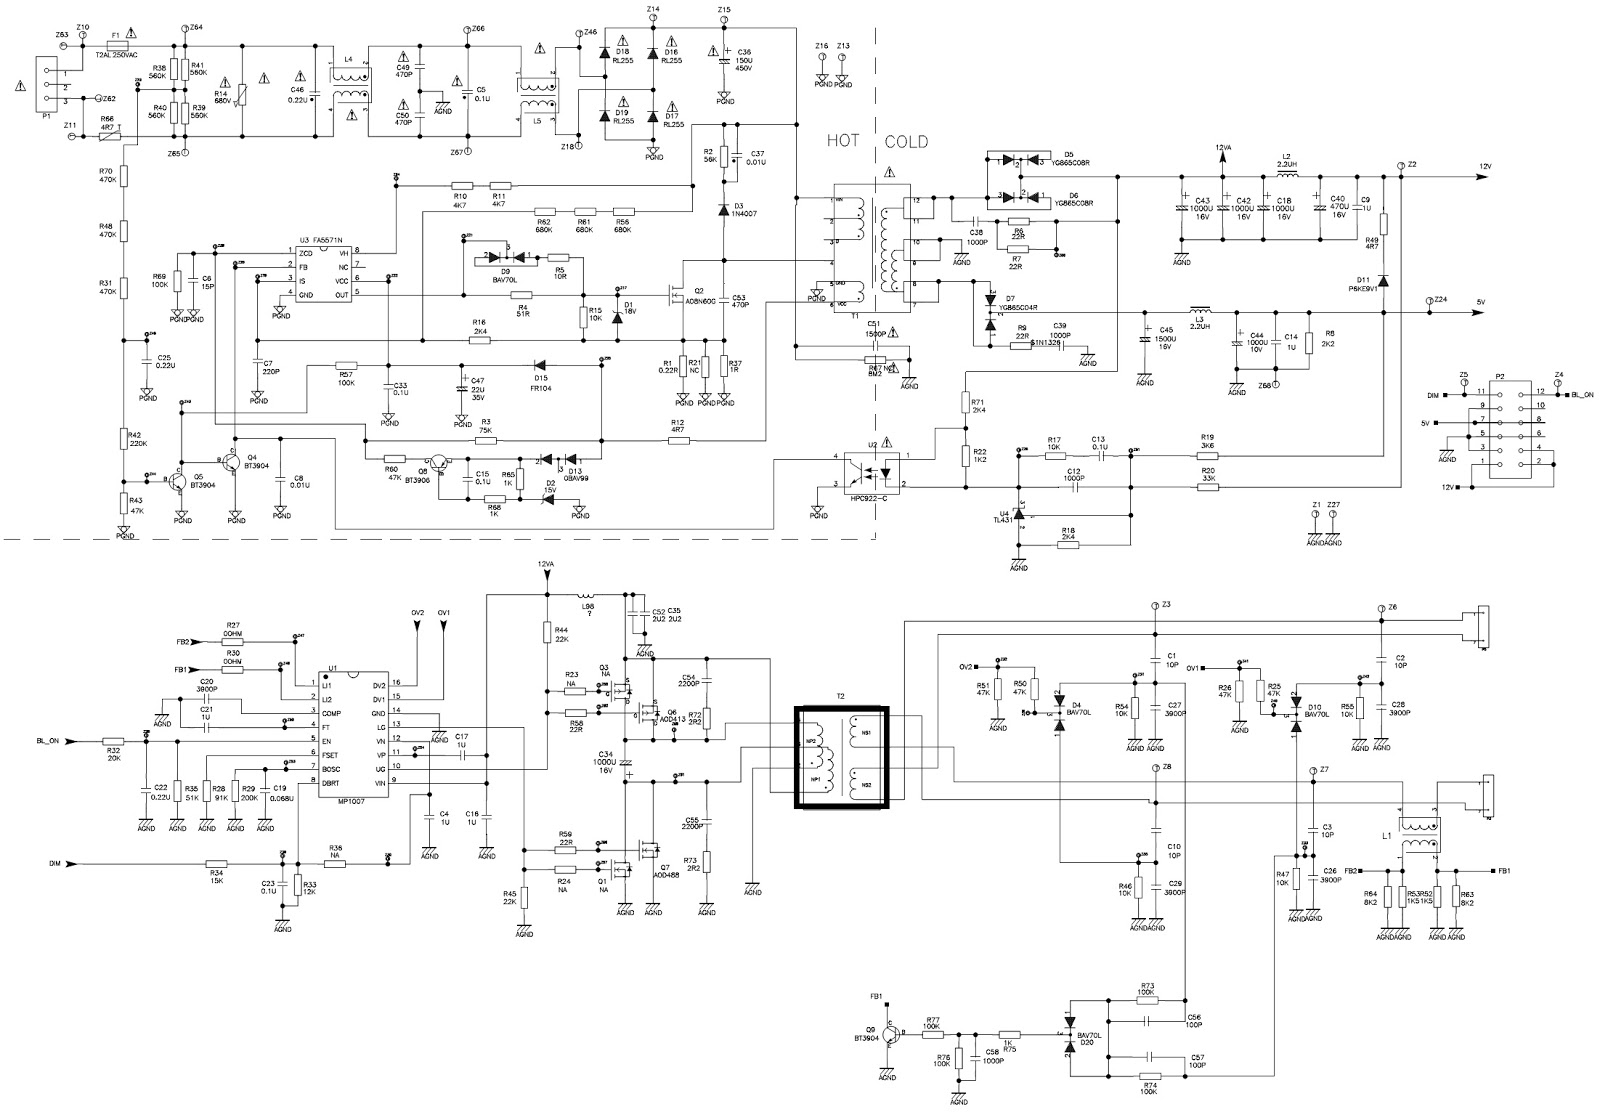 medium resolution of rca lcd tv smps schematic